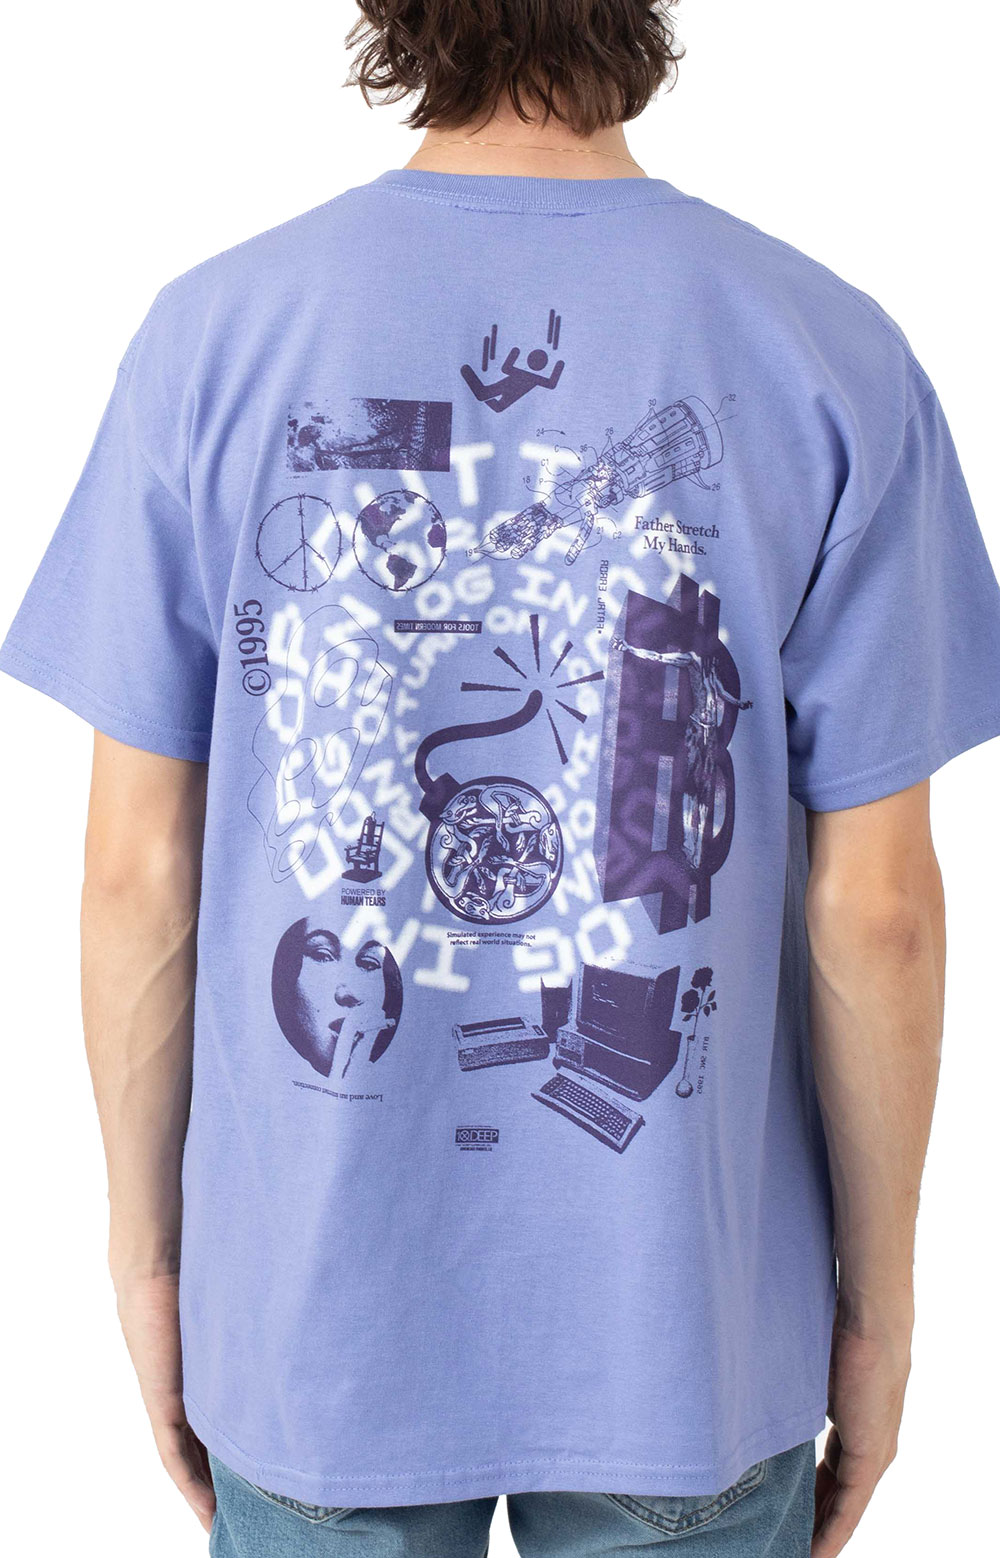 Log In Drop Out T-Shirt - Purple